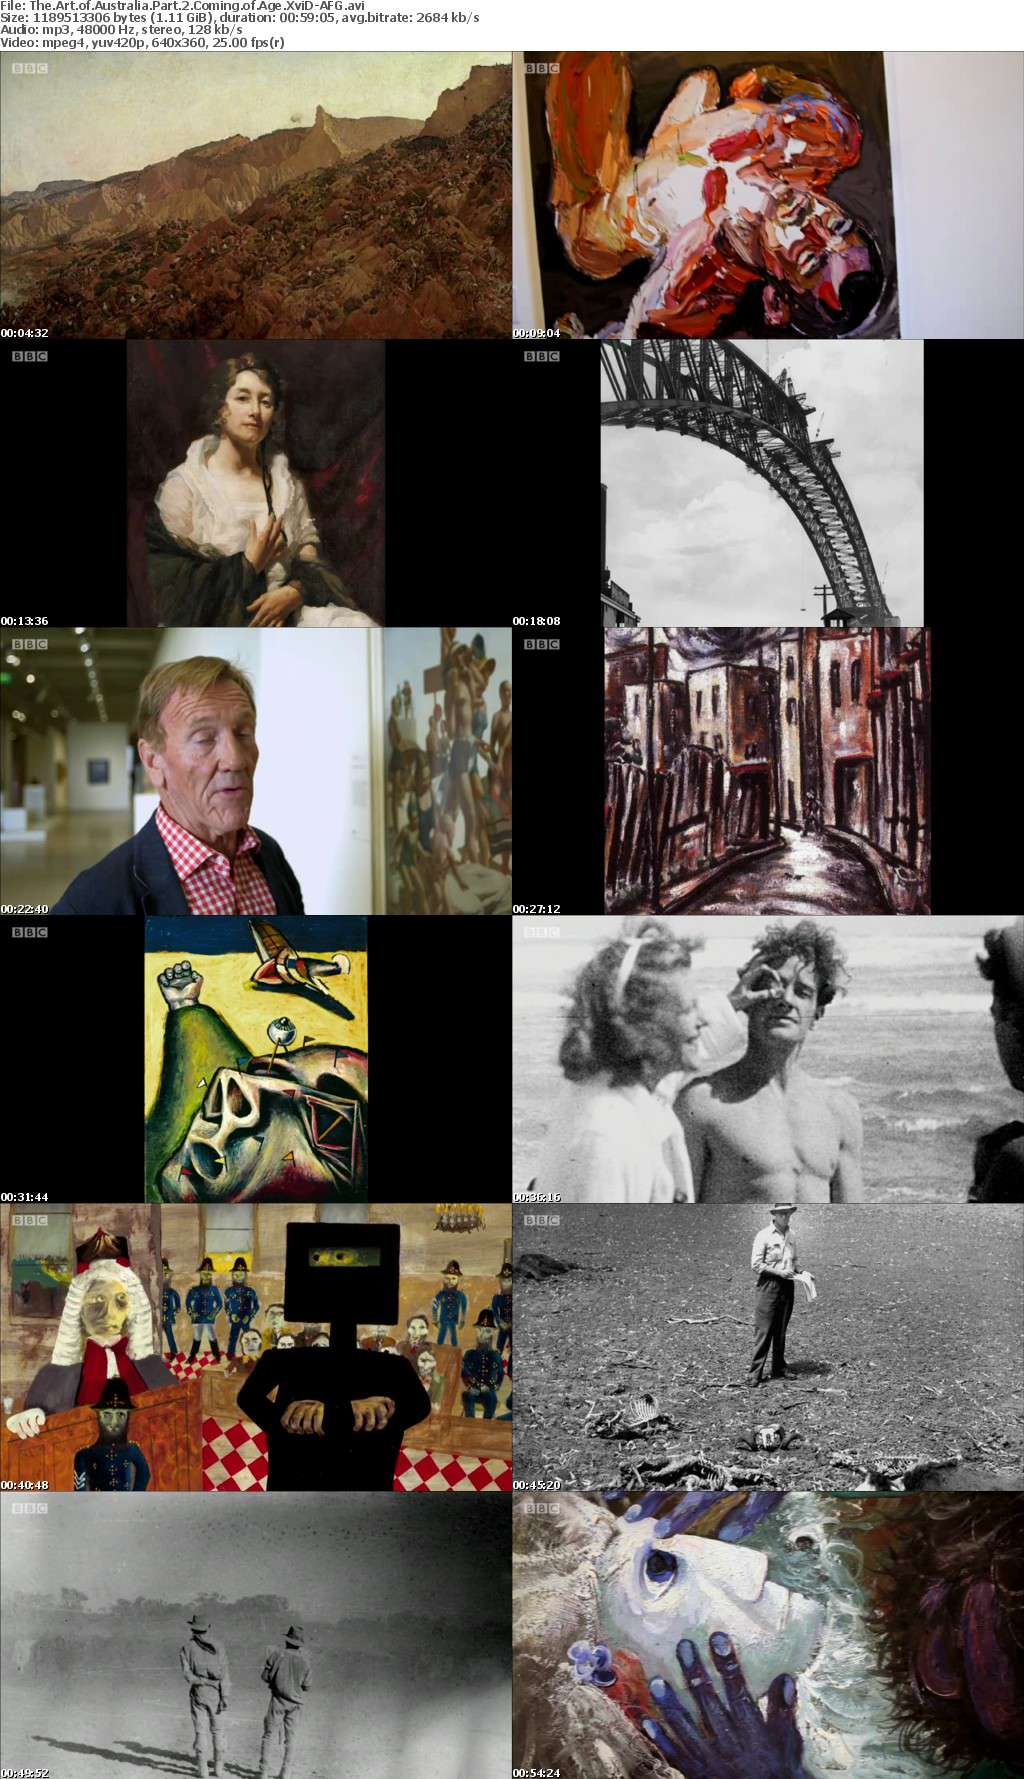 The Art of Australia Part 2 Coming of Age XviD-AFG